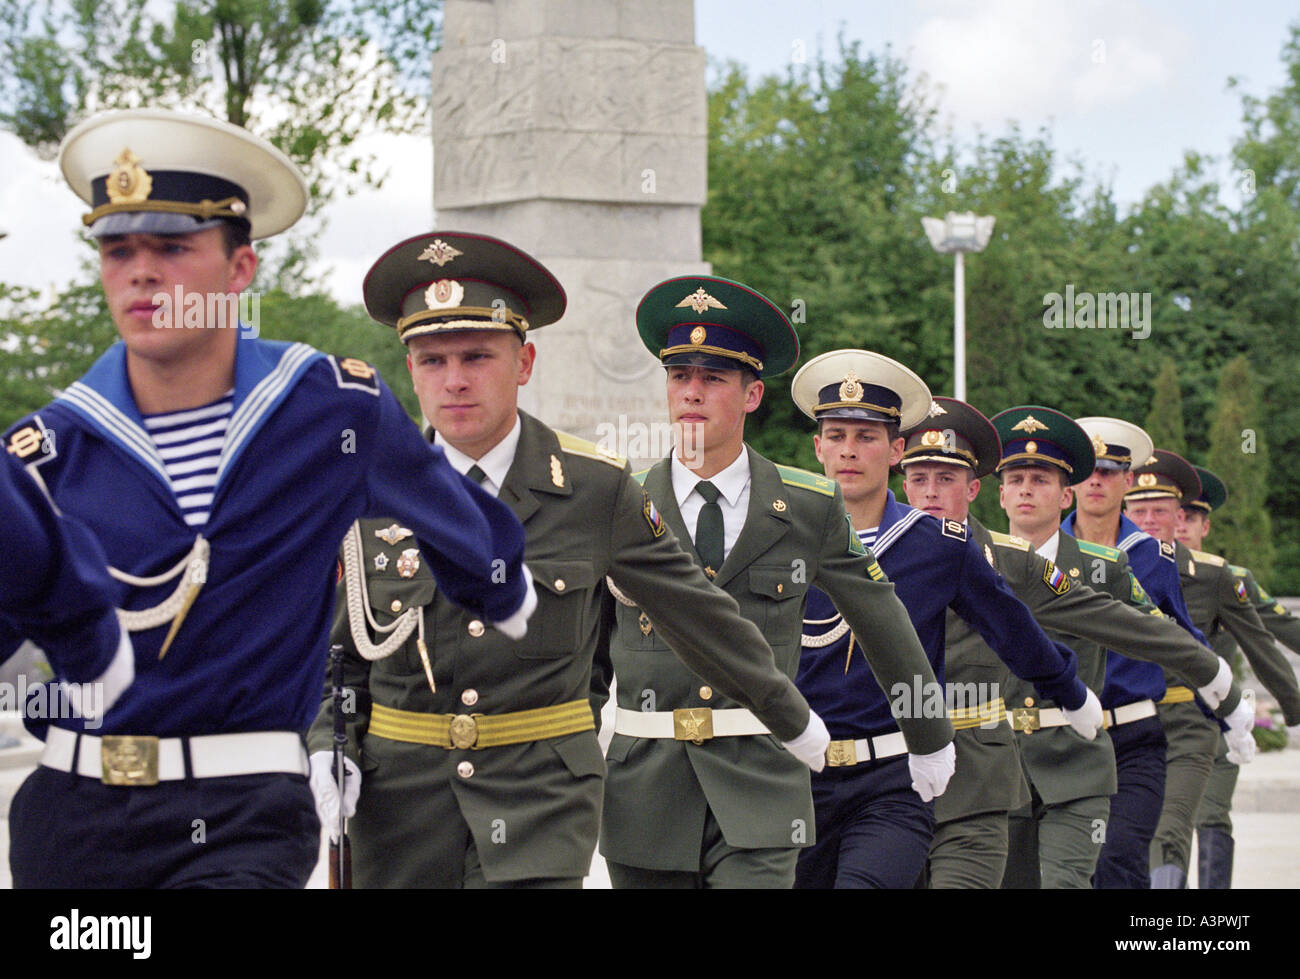 Guard of honour of the Russian Army, Kaliningrad, Russia - Stock Image